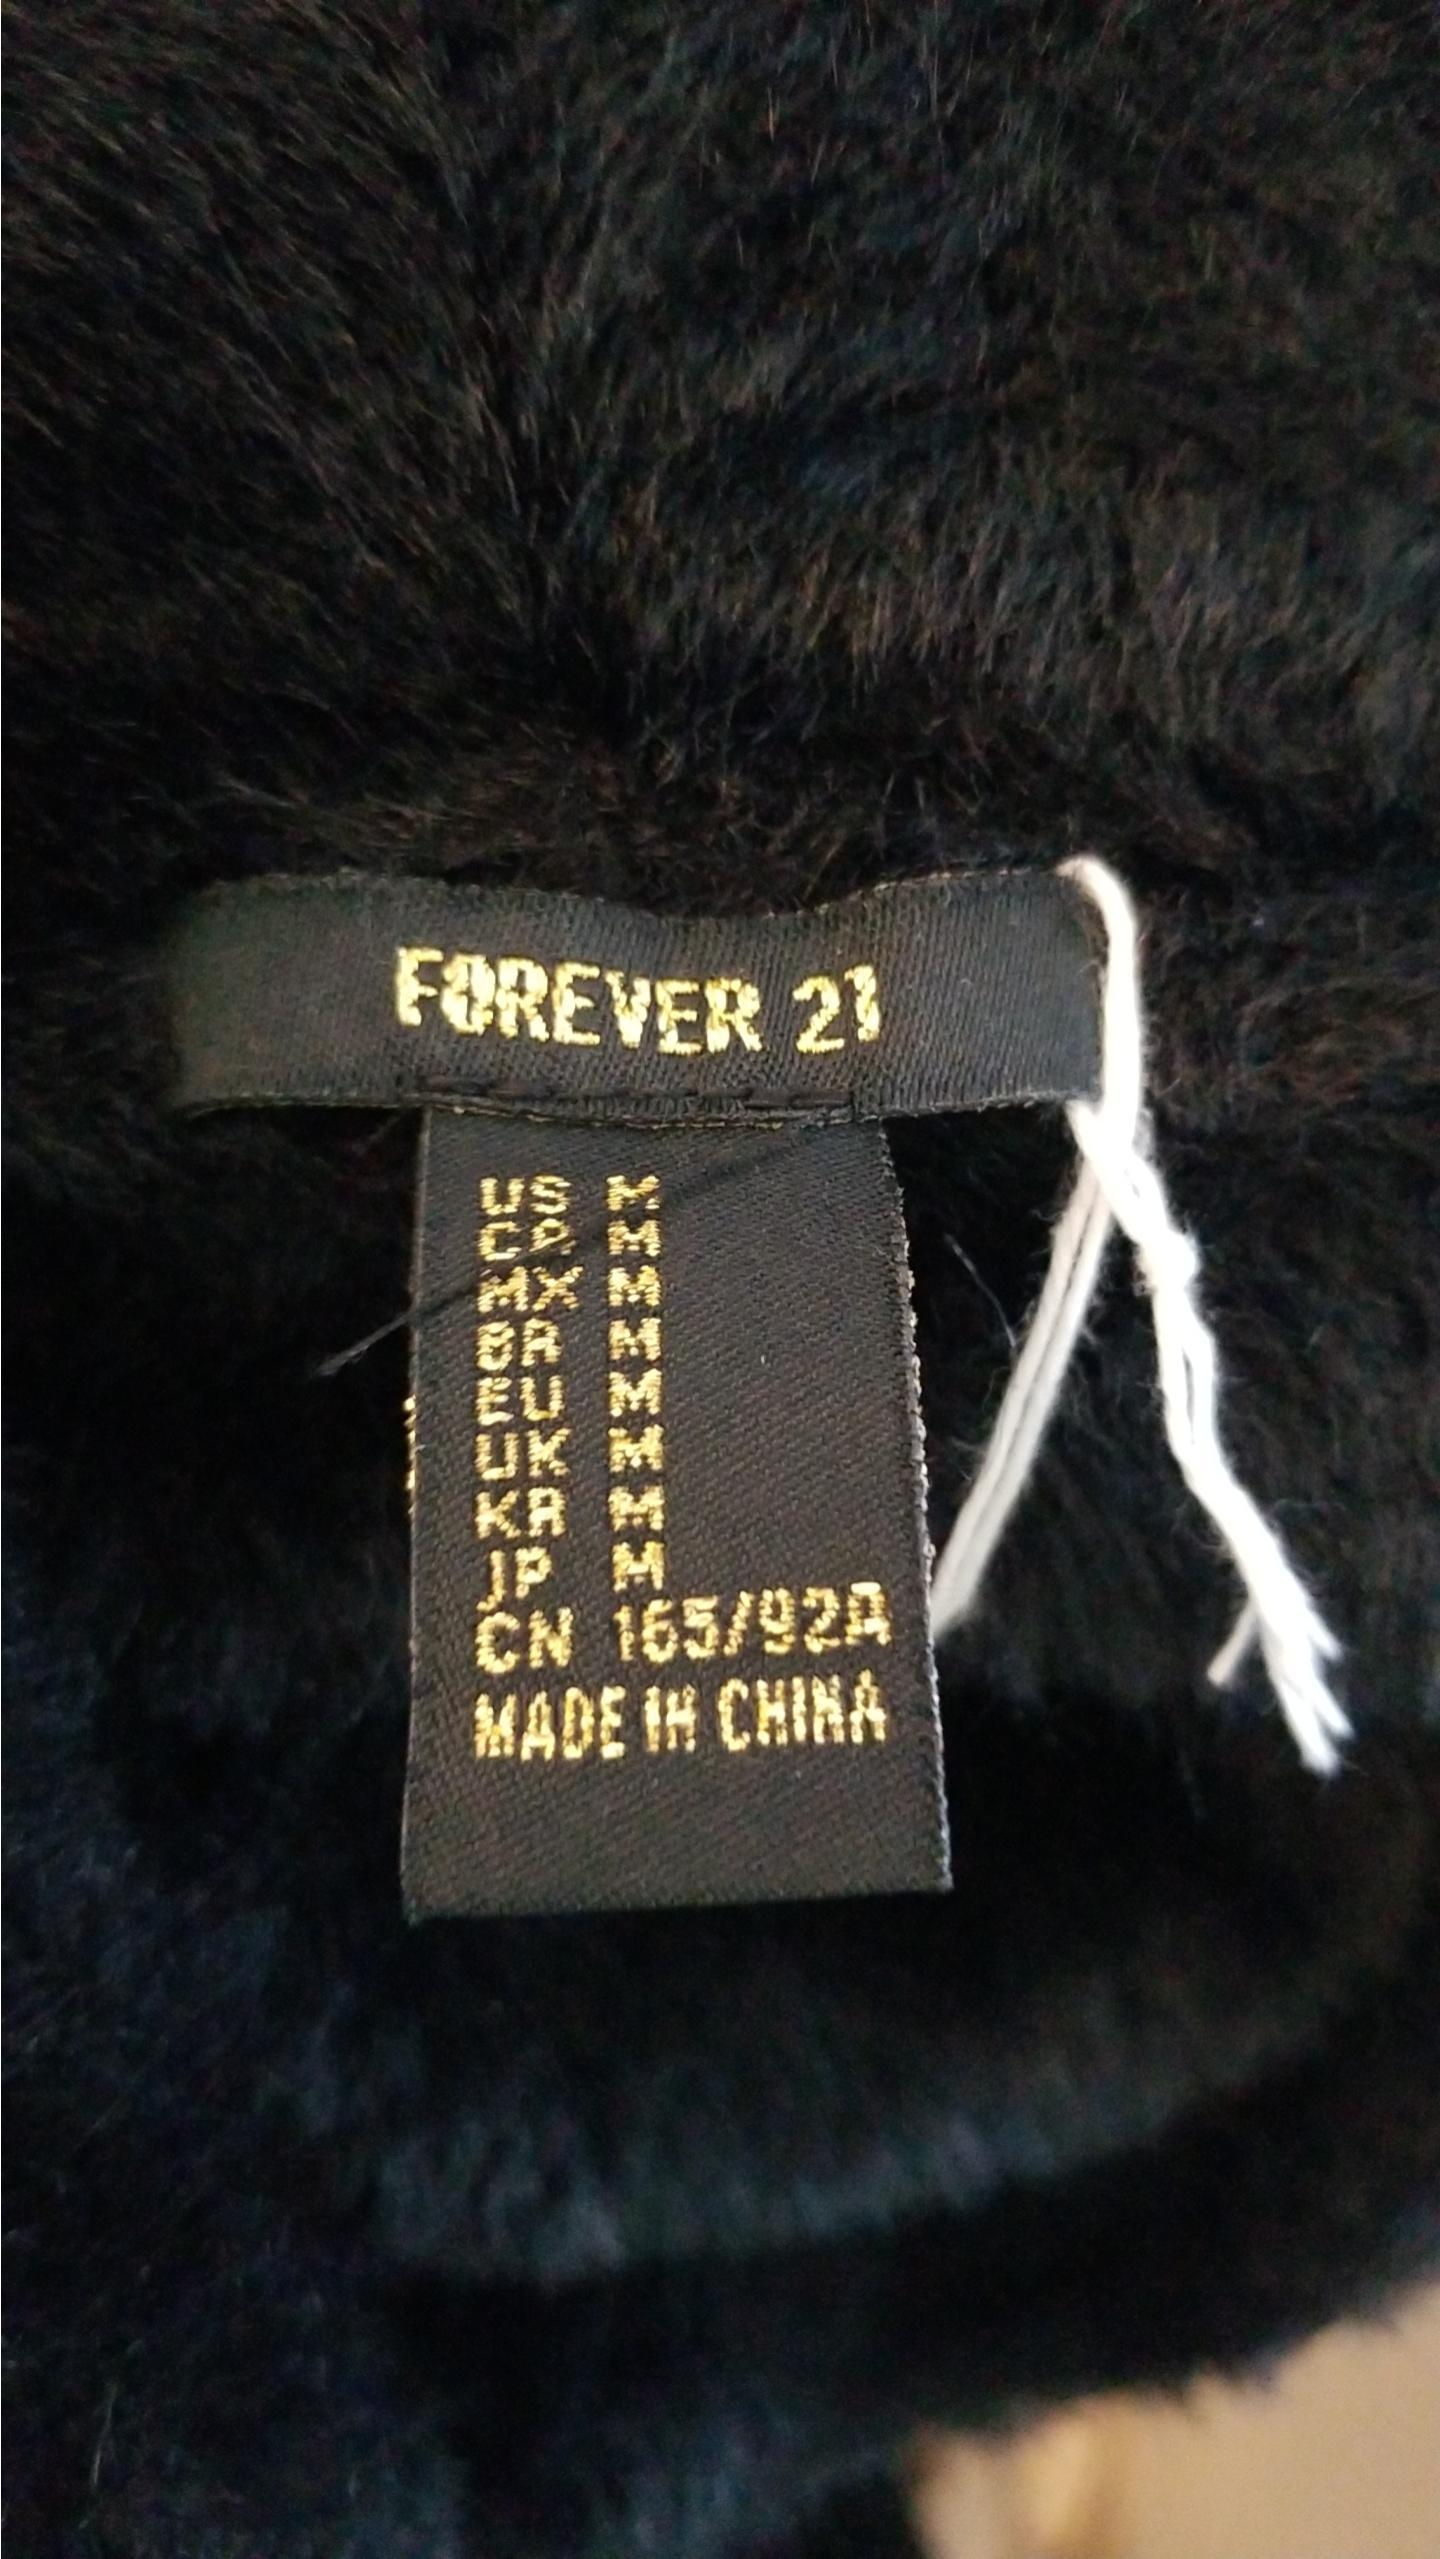 Forever 21 Black Faux Fur Warm Sweater, , Black, , women's Tops, women's Black Tops, Forever 21 women's Tops, black sweater, fur sweater, warm top